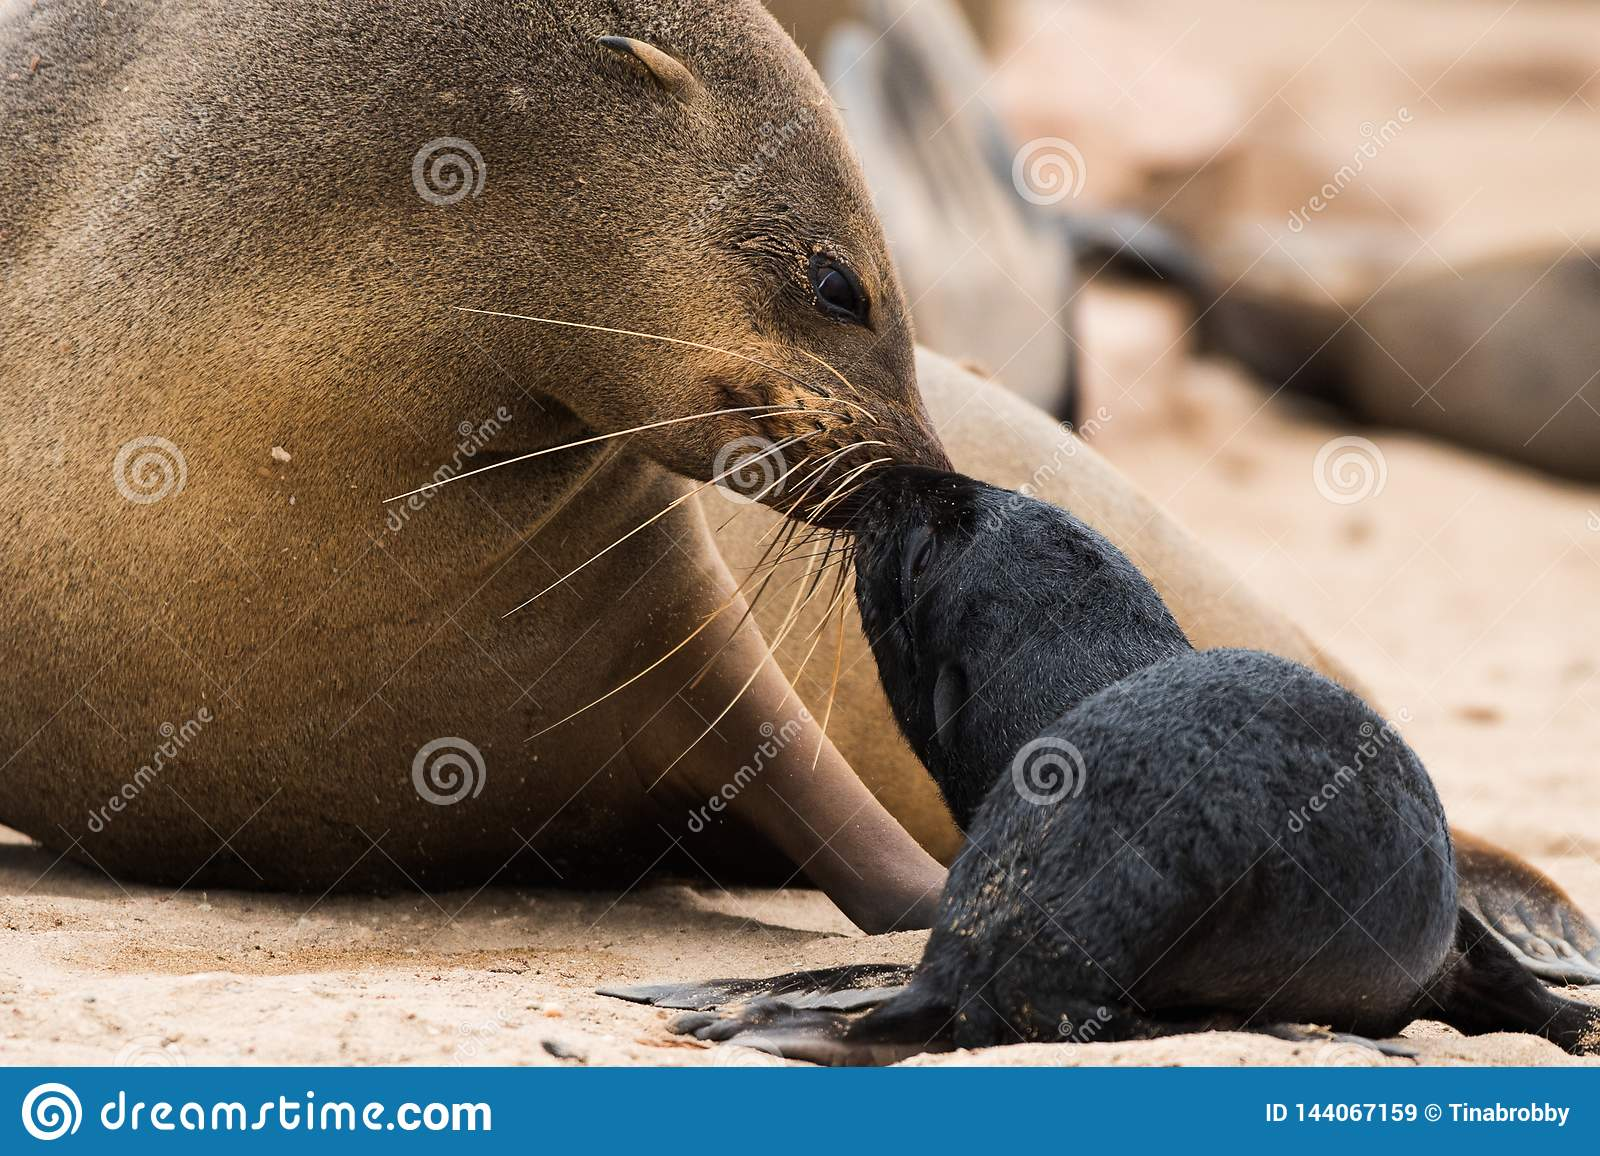 Cape fur seal and pup, Namibia